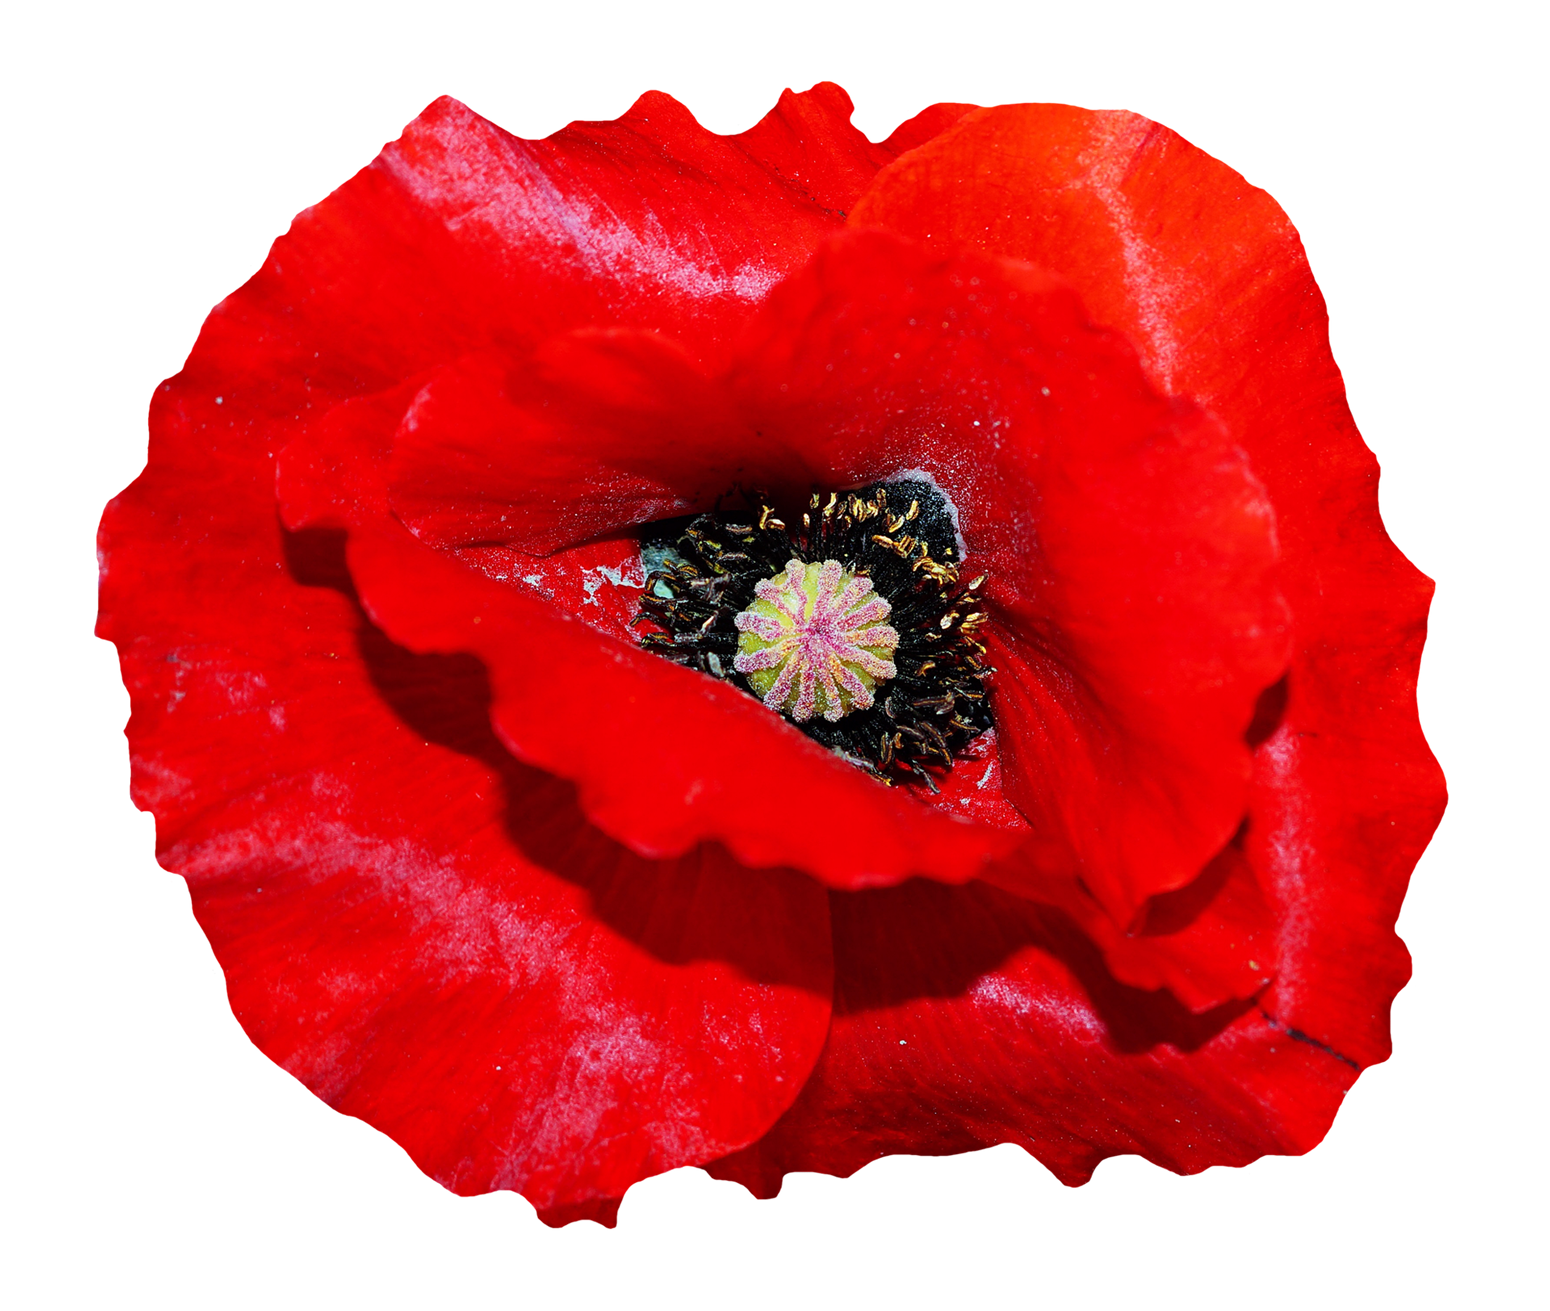 Poppy clipart transparent background. Flower png image purepng